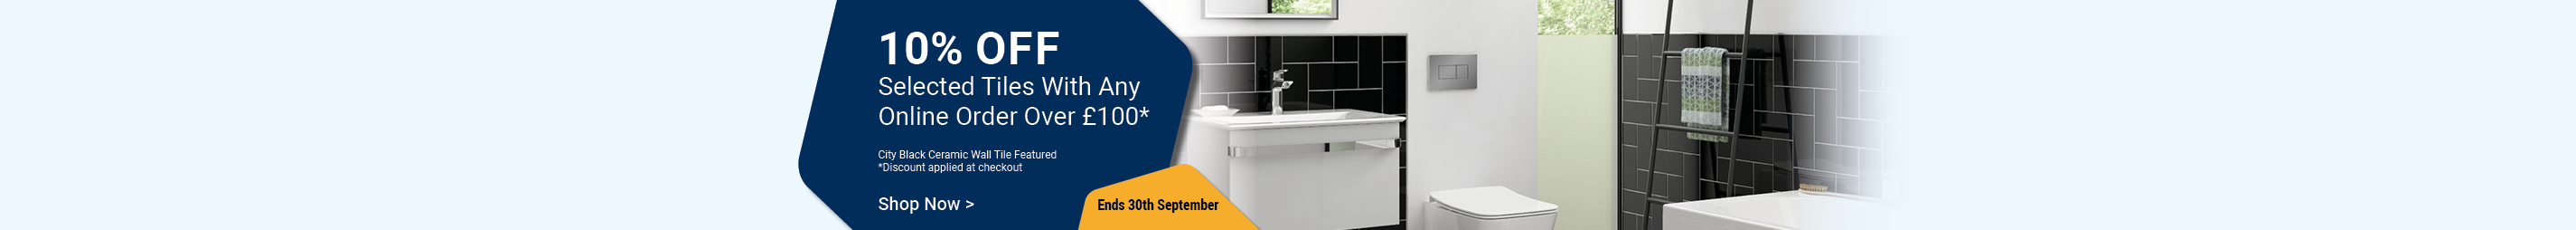 10% off Selected Tiles When You Spend Over £100